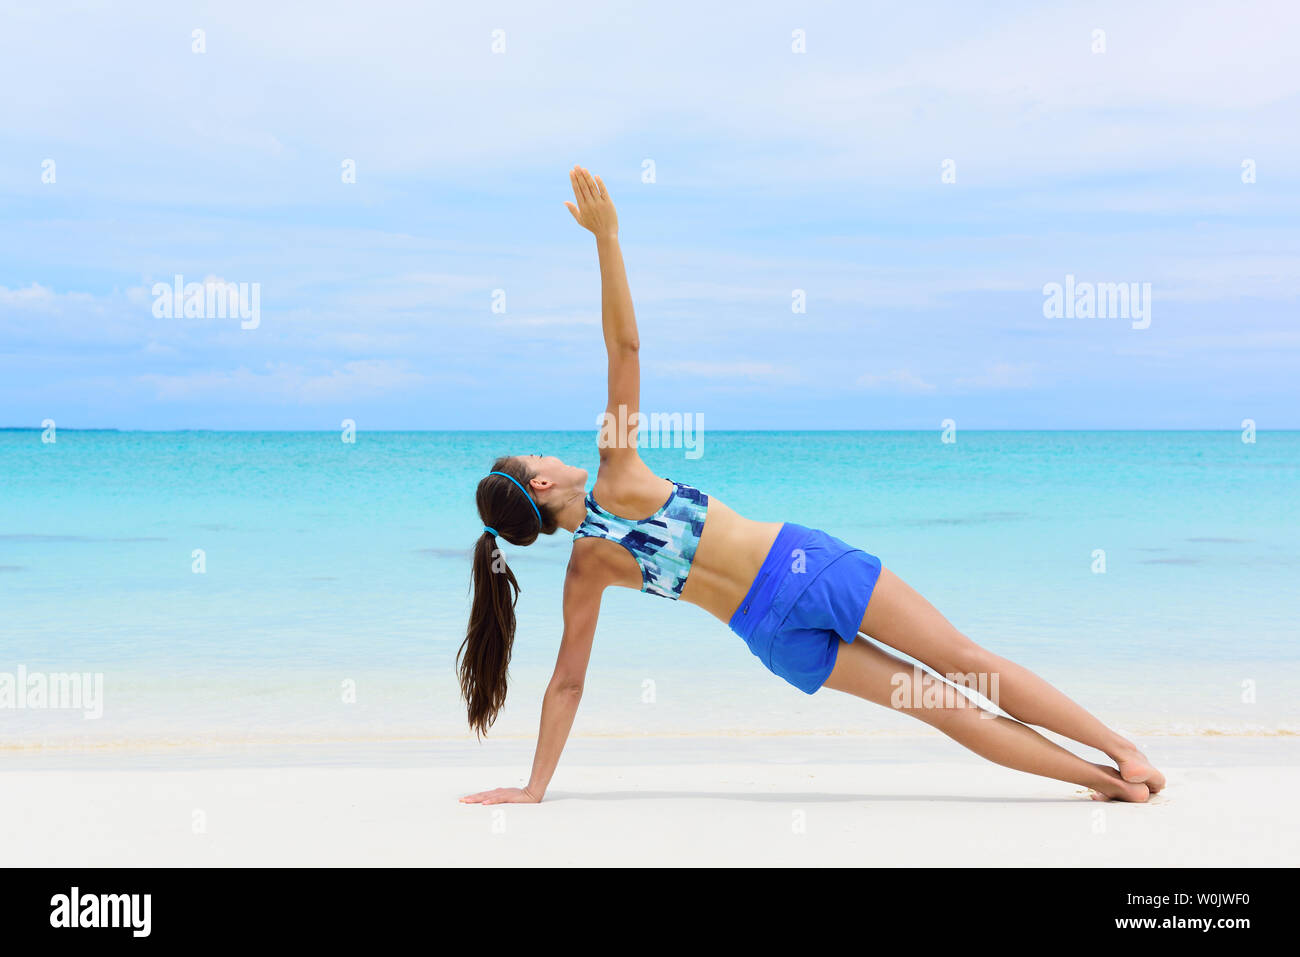 Fitness woman strength training her body core muscles with yoga pose. Athlete planking on one arm doing side plank and hip lift. - Stock Image